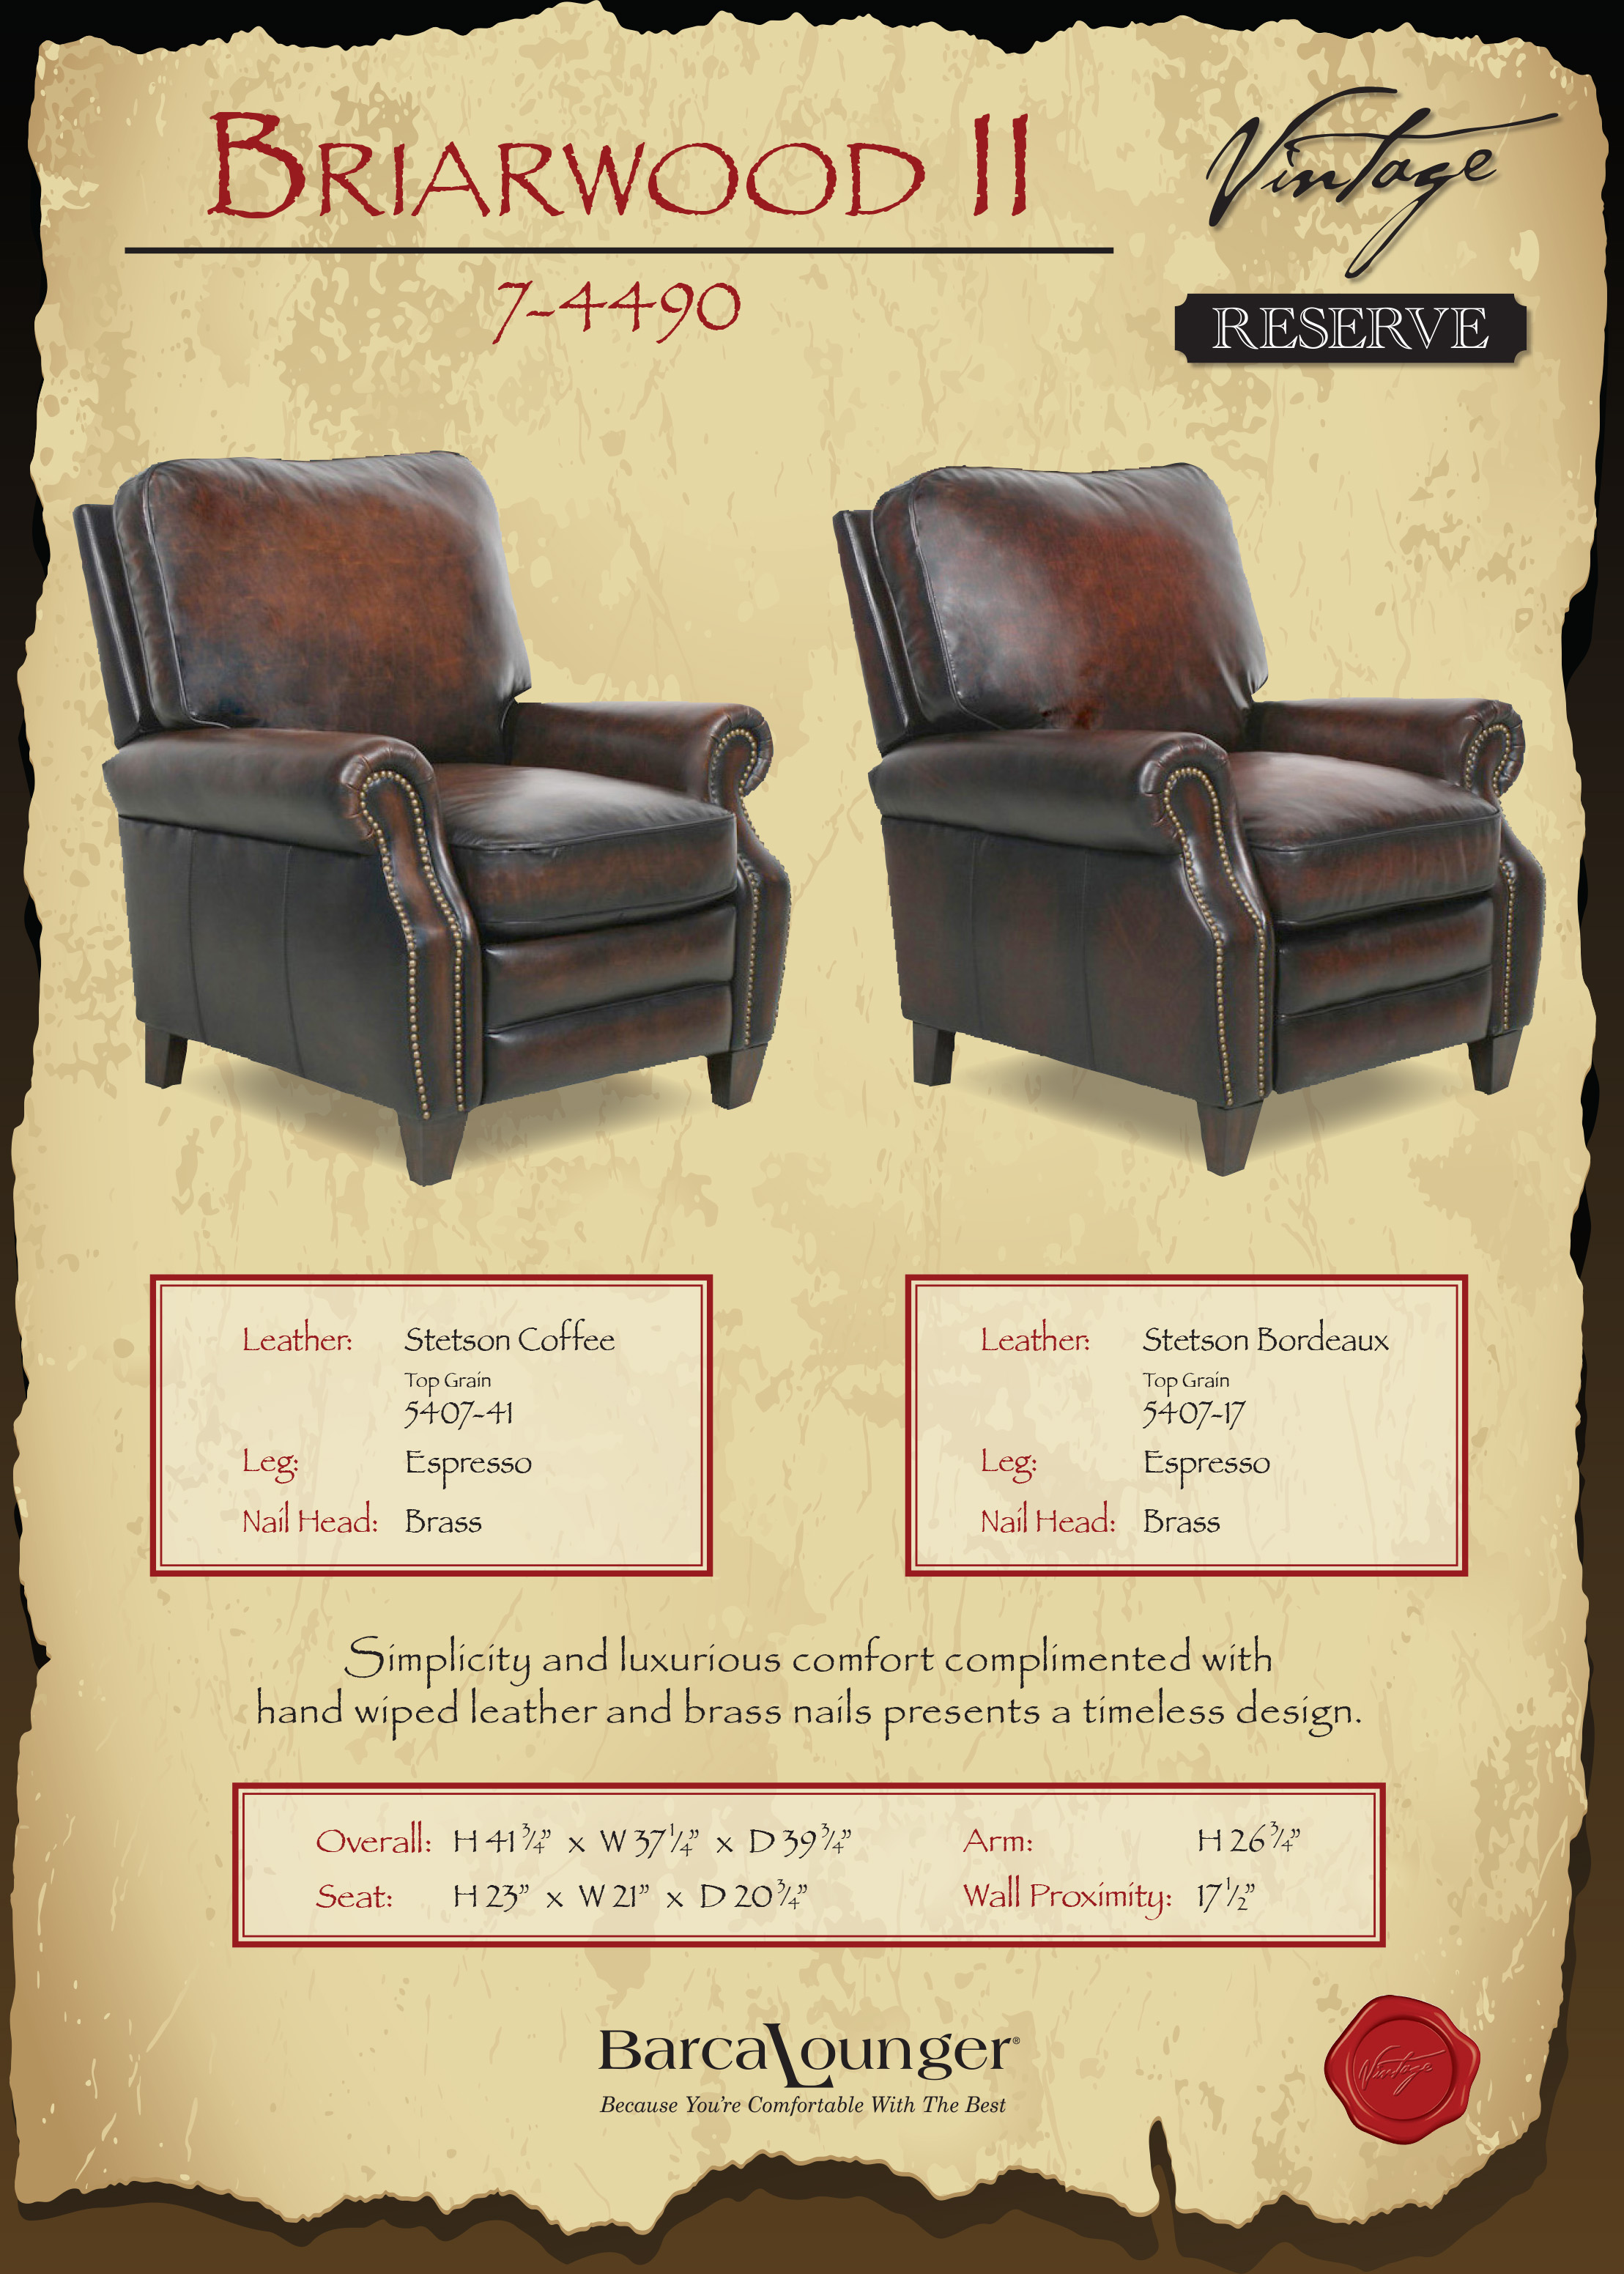 Barcalounger Briarwood Ii Recliner Chair Dimensions